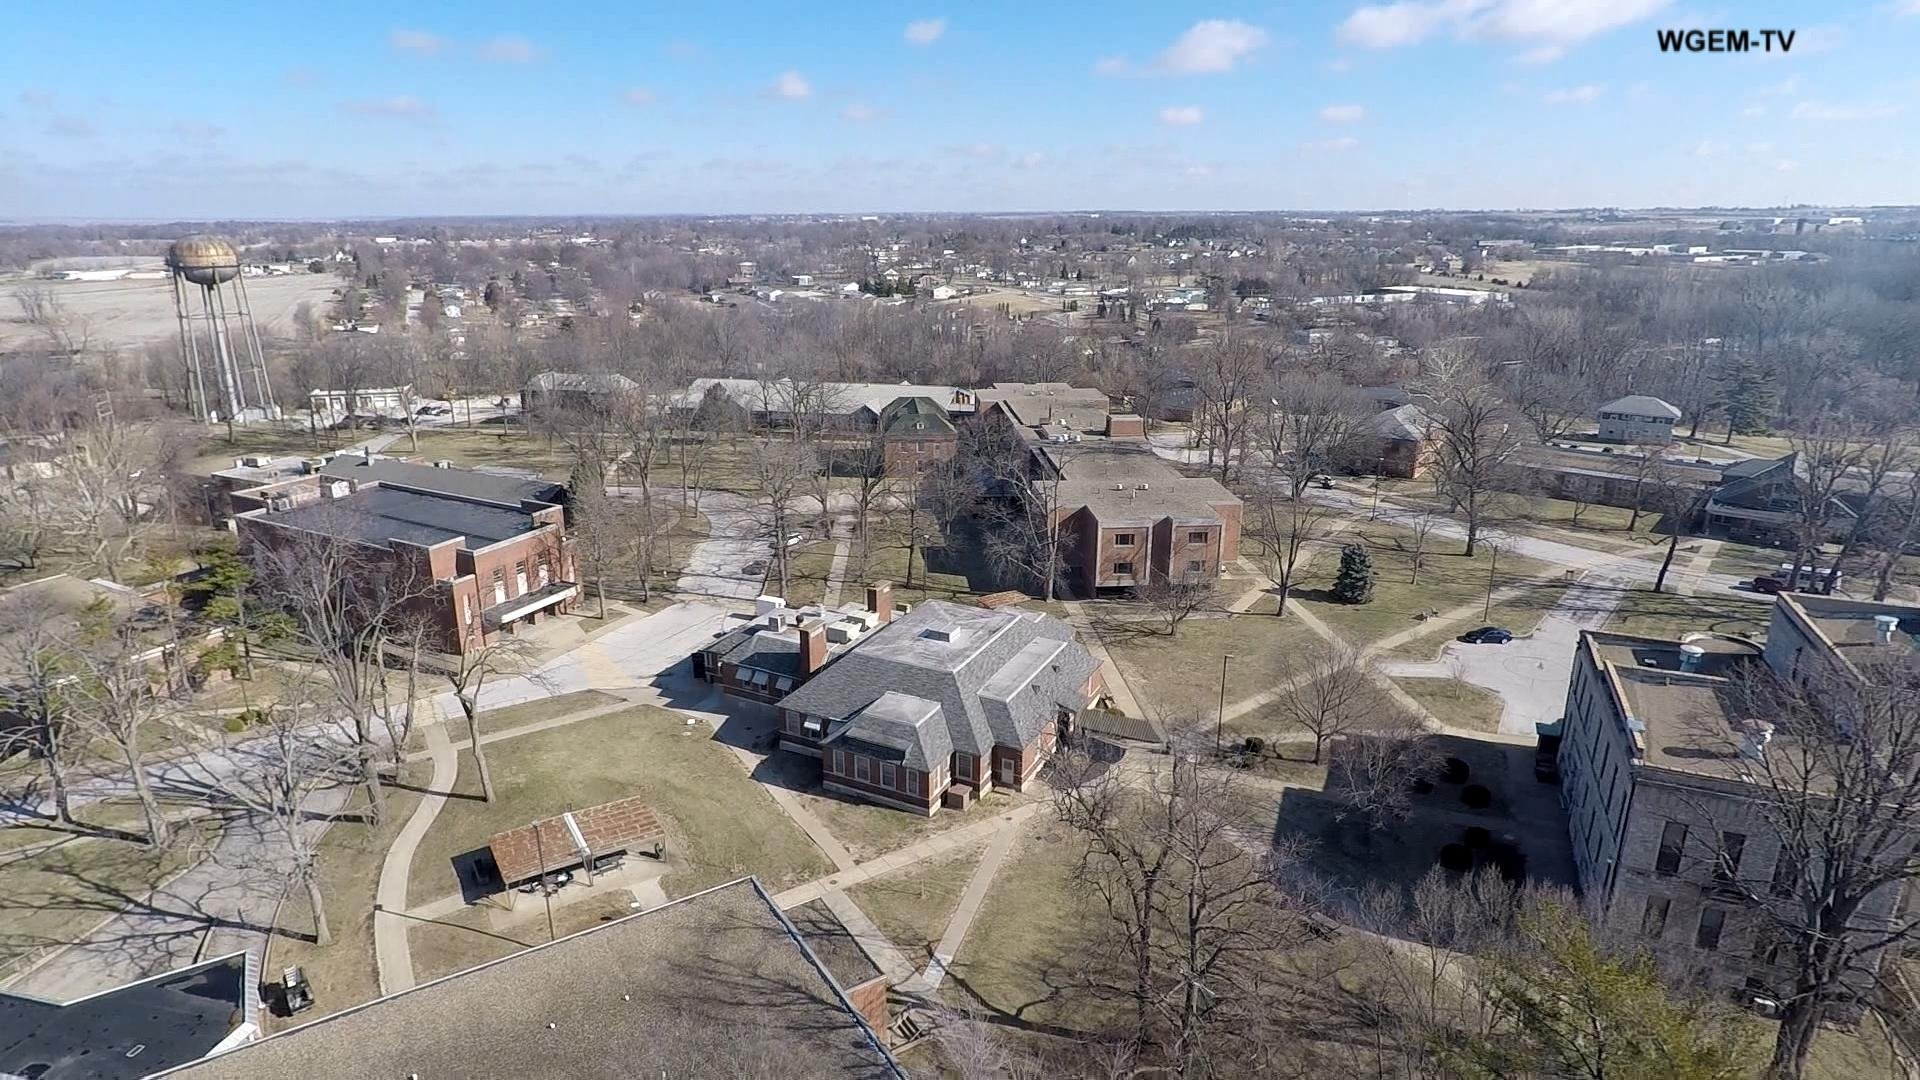 A view of the Illinois Veterans' Home from the air.